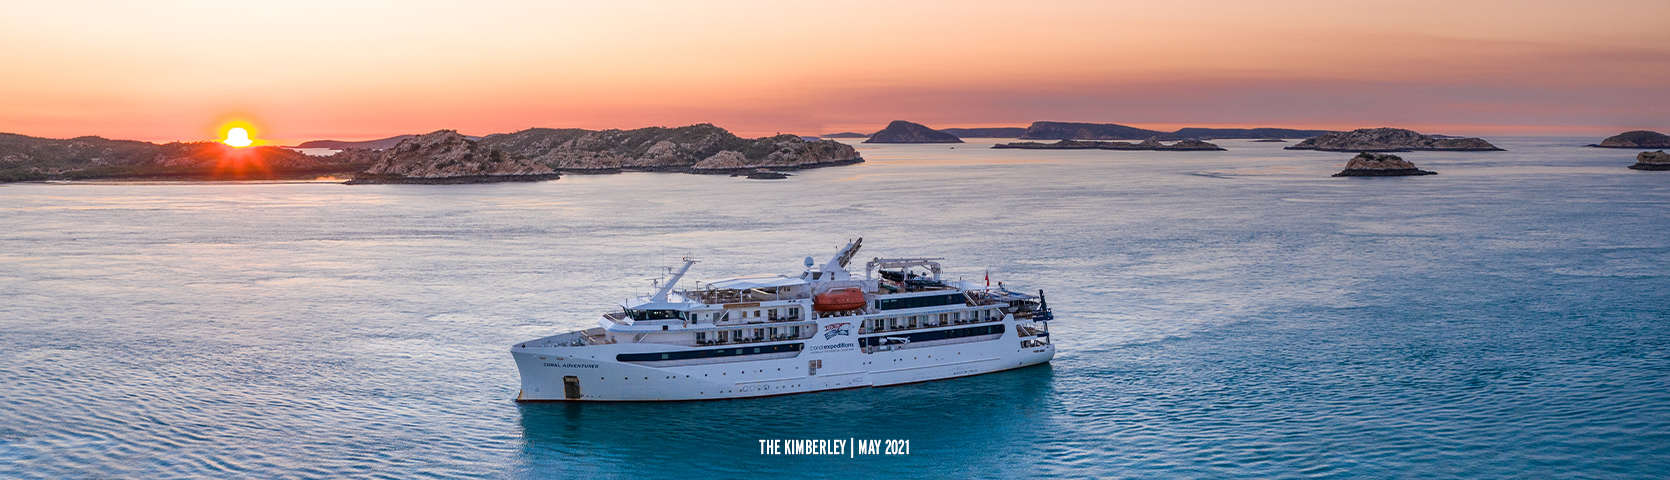 Coral-Adventurer-in-the-Kimberley-May-2021